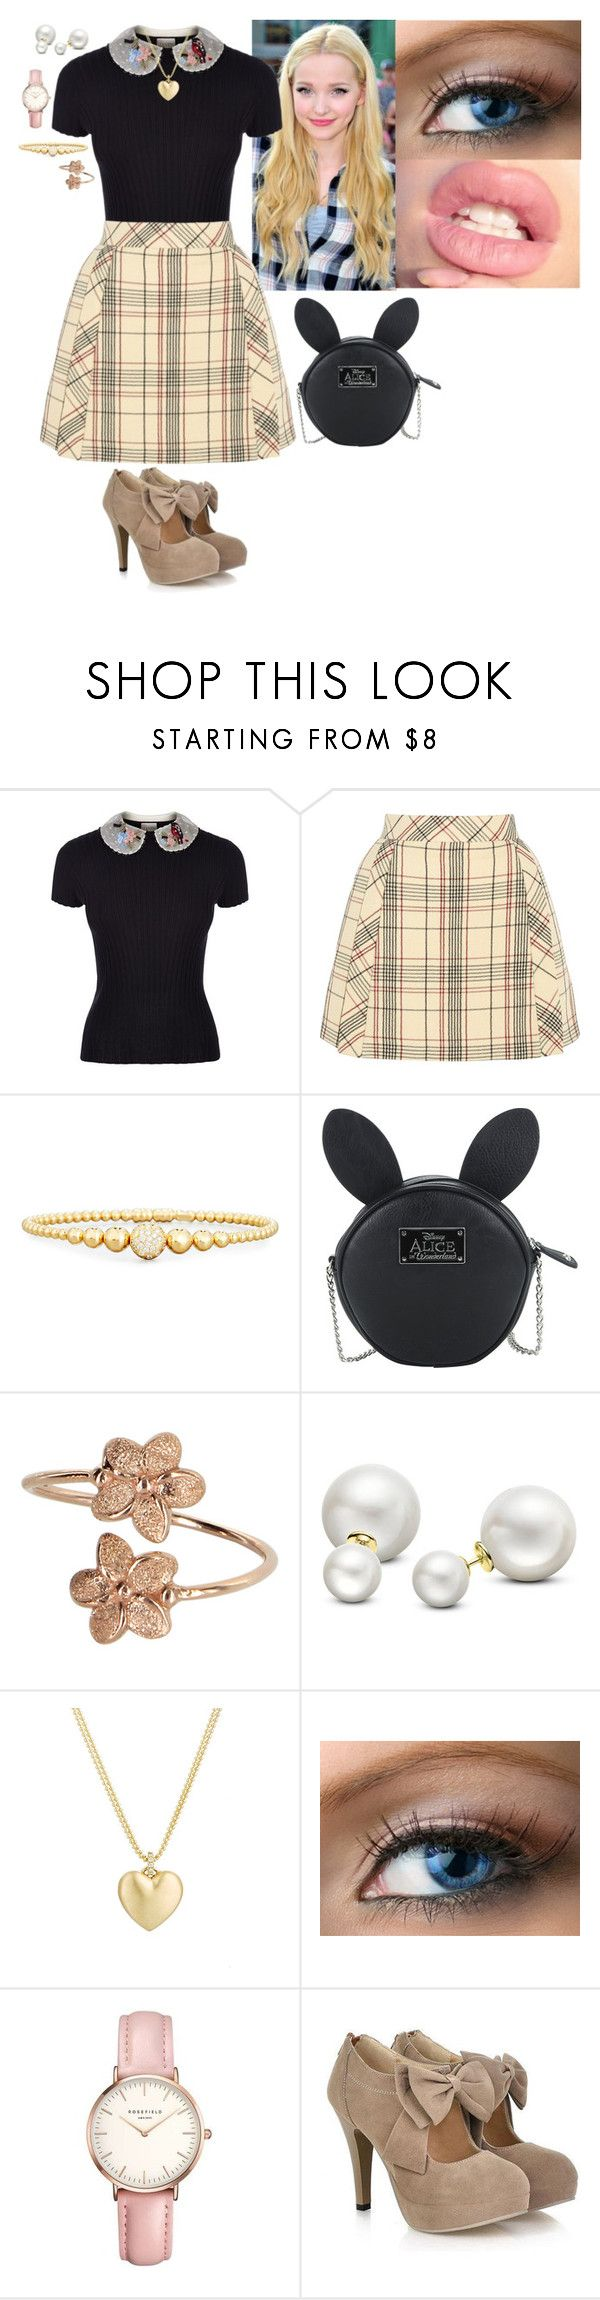 """Untitled #239"" by stinze on Polyvore featuring RED Valentino, Delpozo, Rivière, Disney, Allurez, Finn and Topshop"